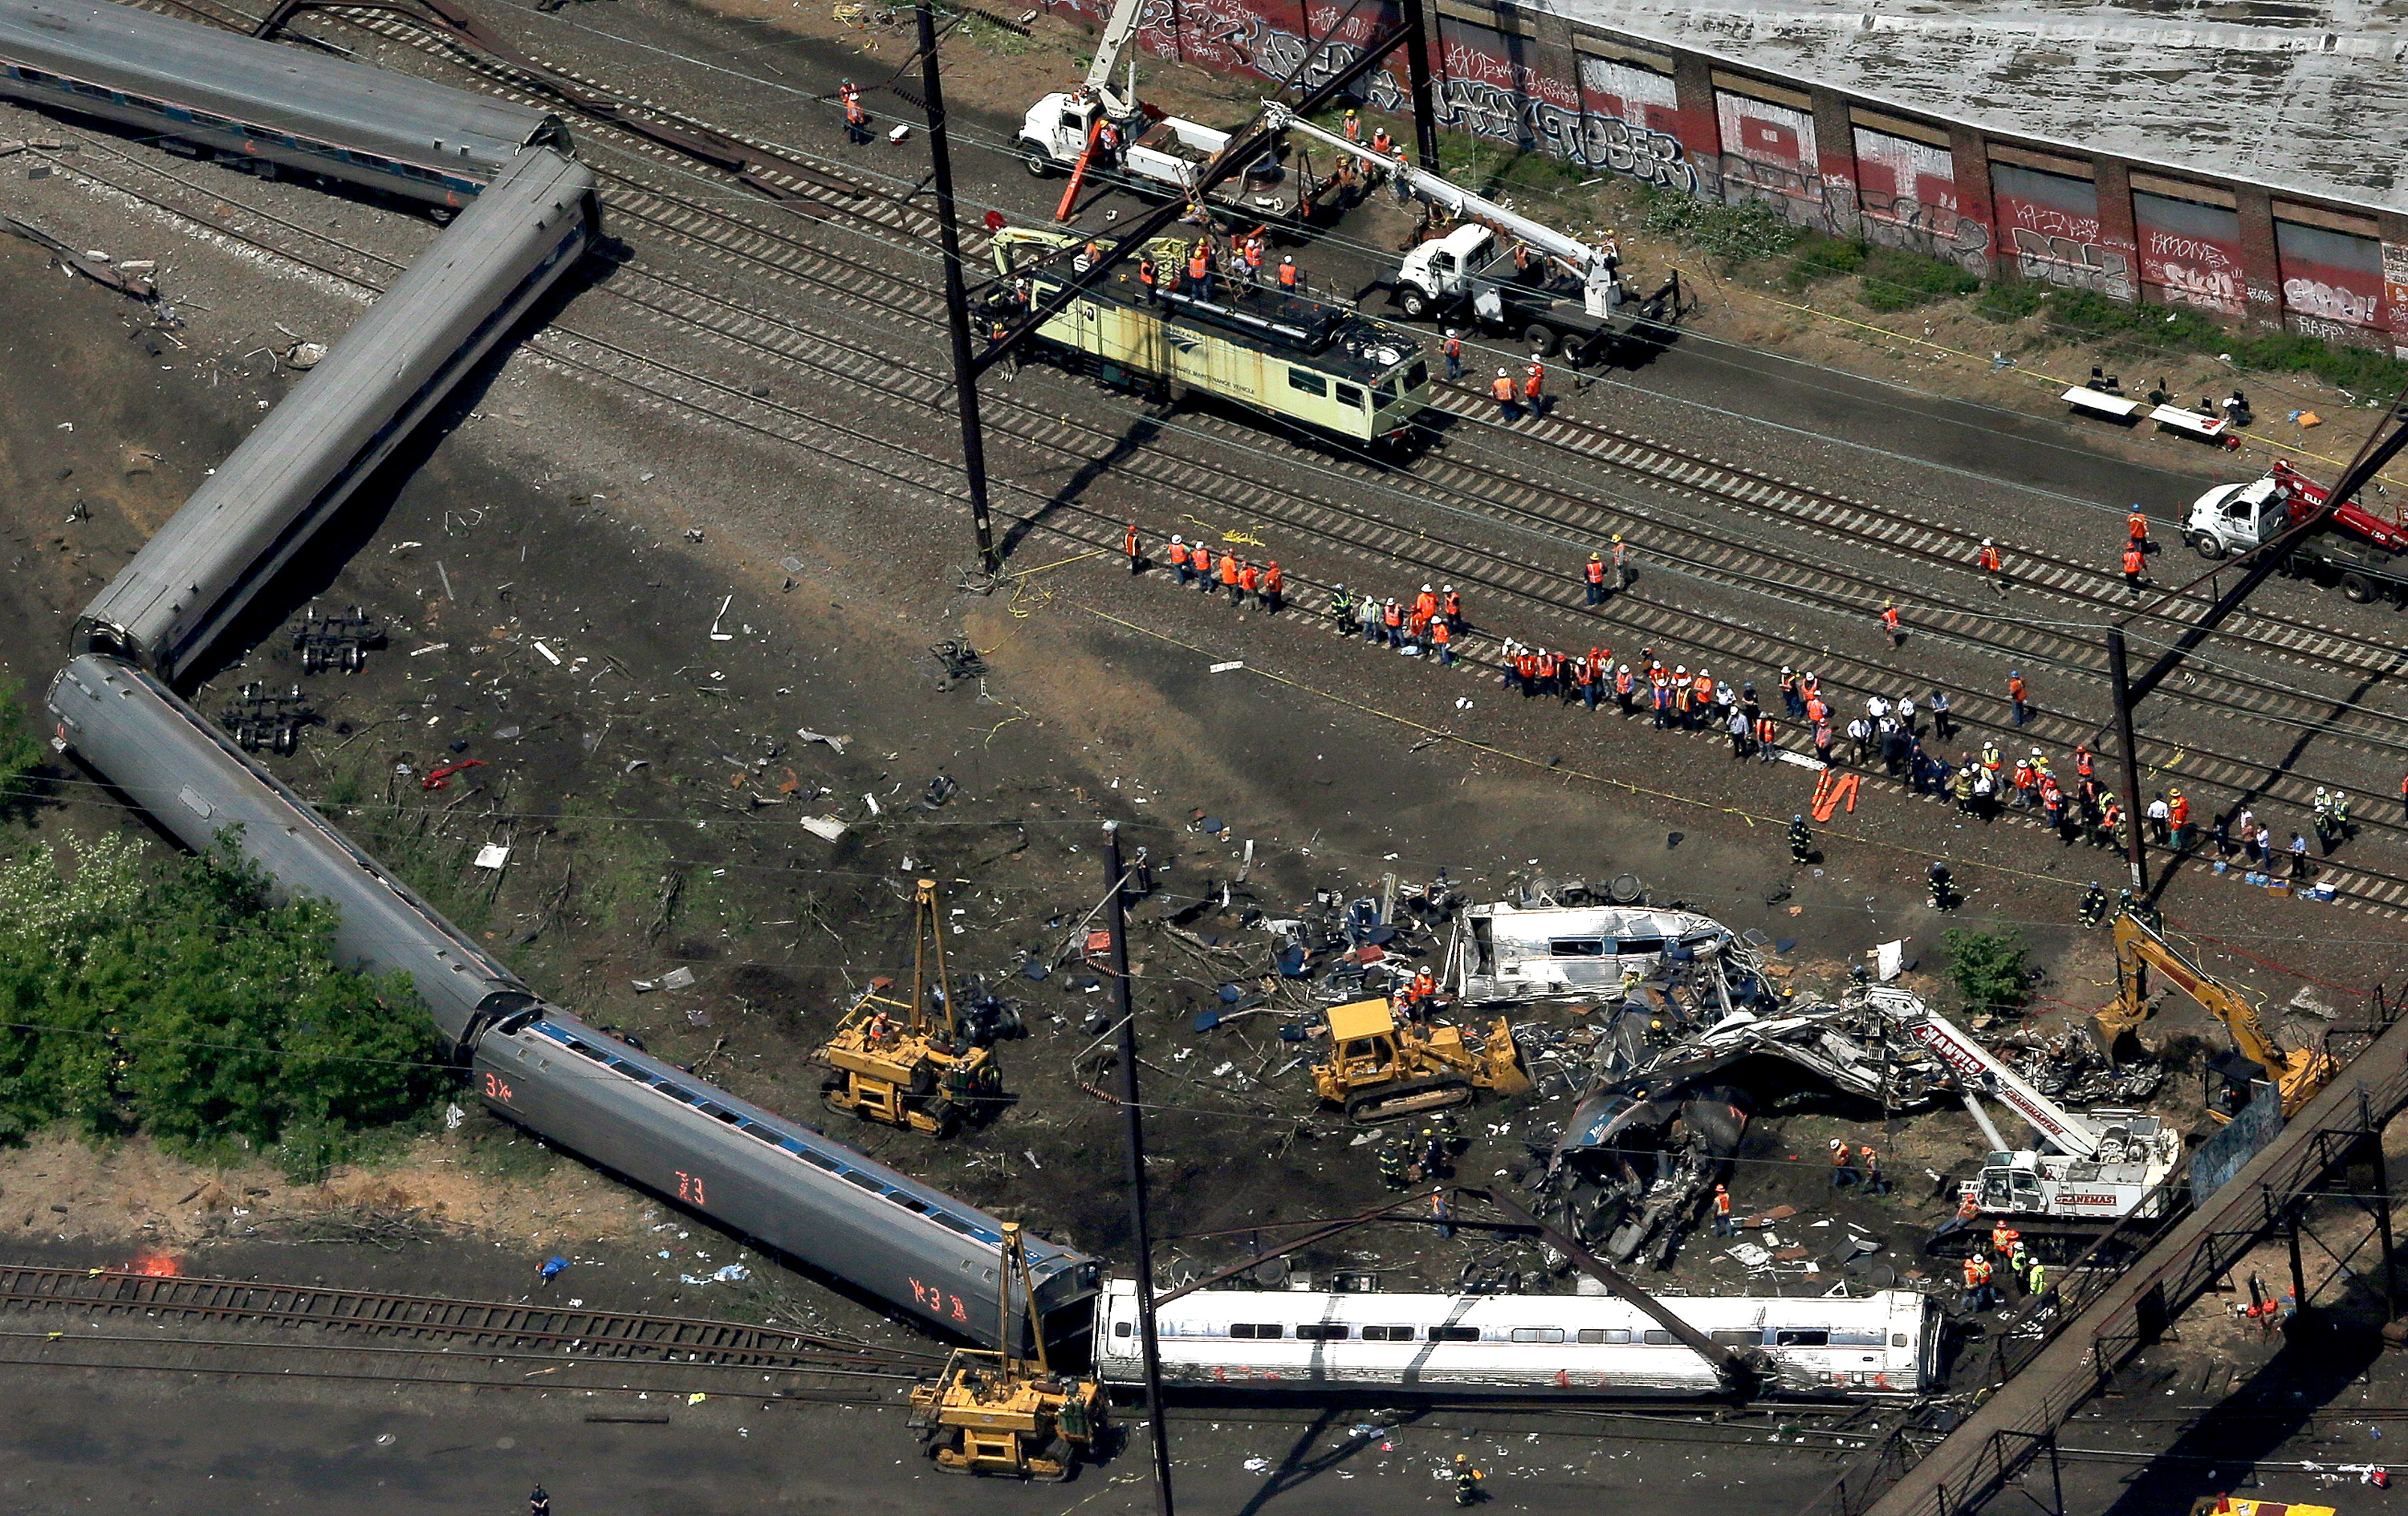 The wreckage of the Amtrak crash that derailed in Philadelphia. (Getty)